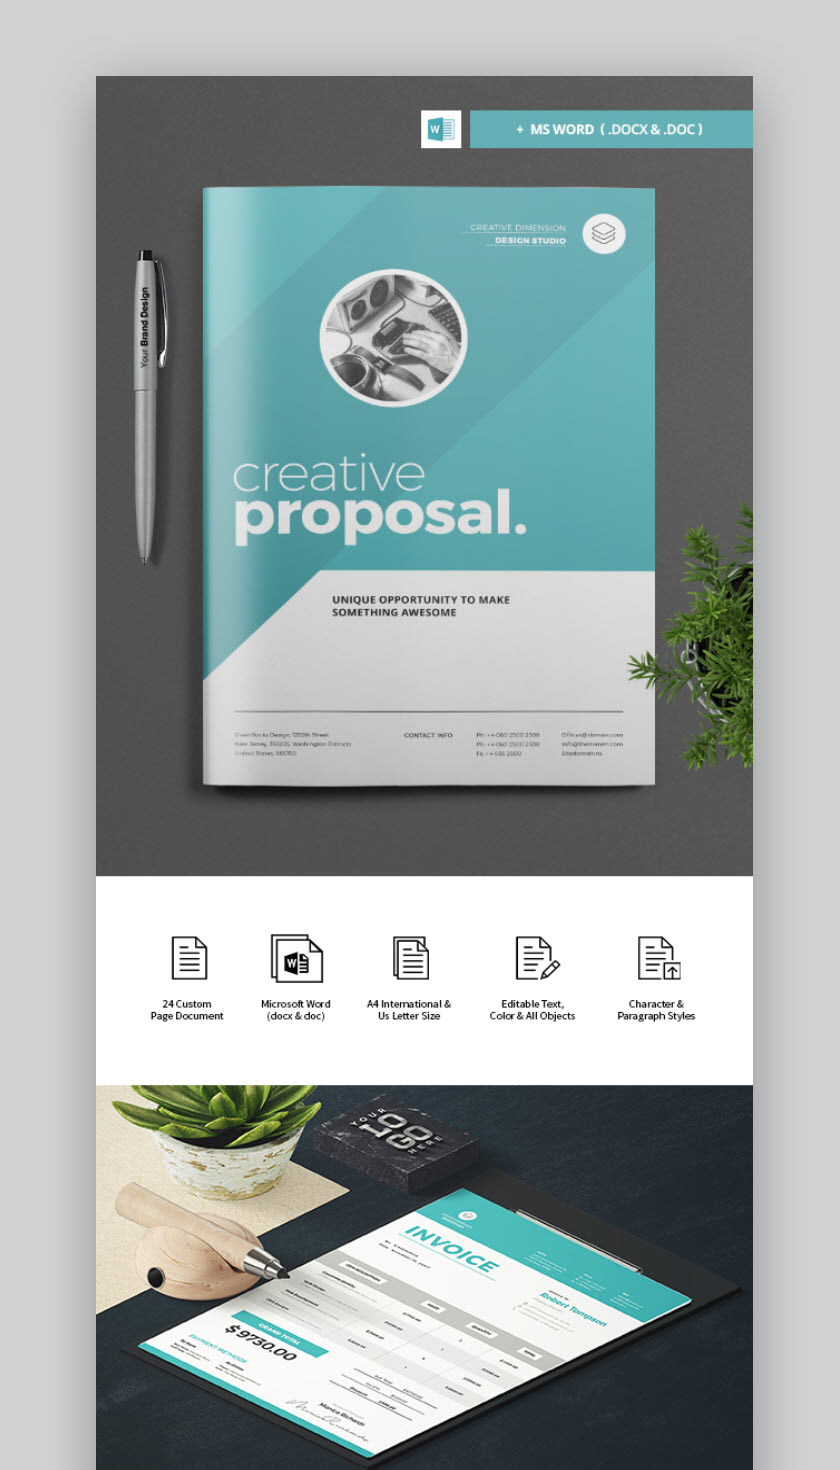 18 professional business project proposal templates for 2018 professional business proposal template with cover design flashek